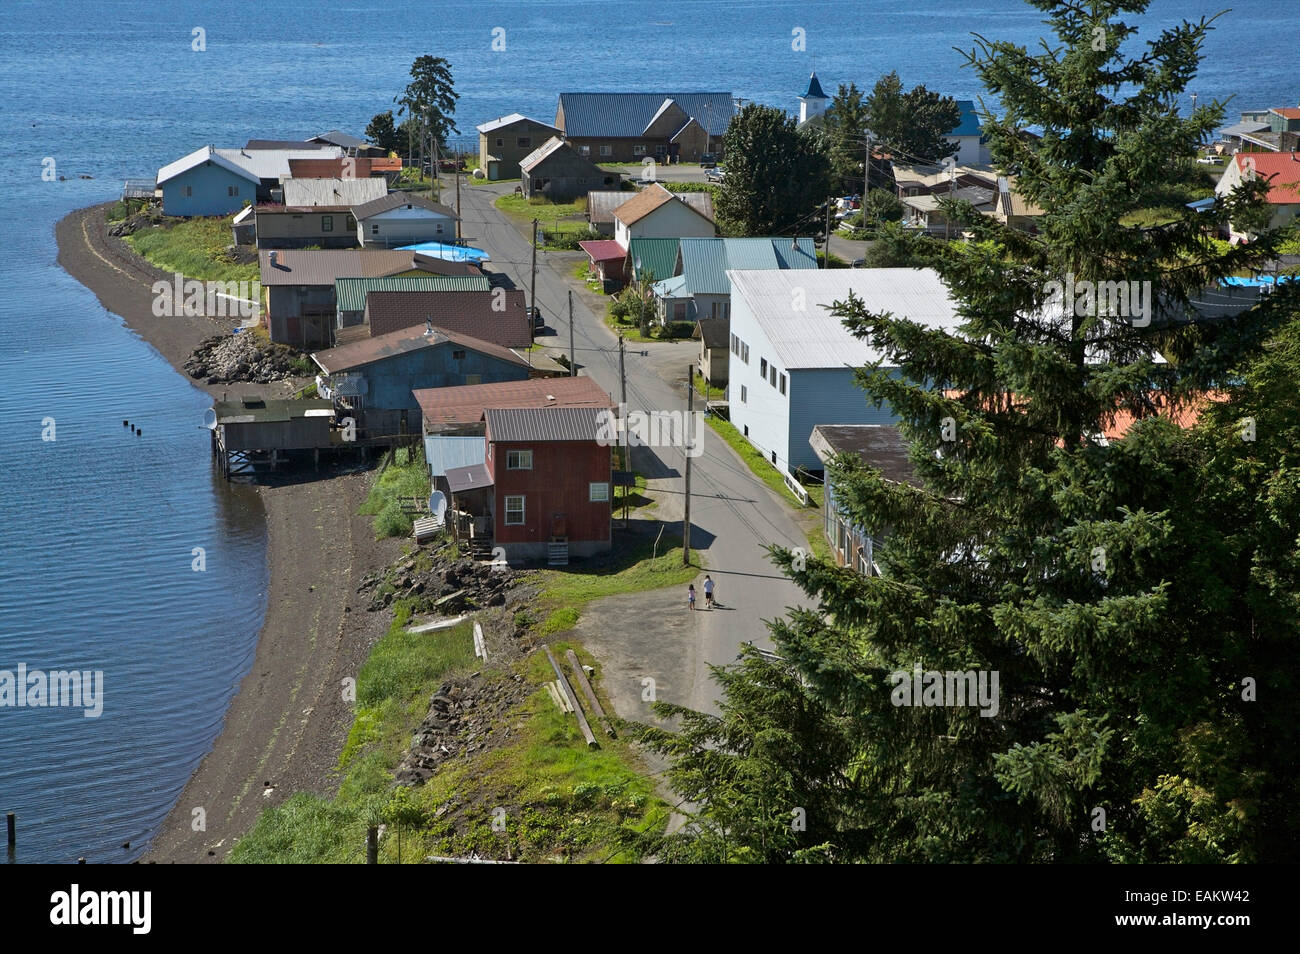 Aerial View Of *Old Town* In The Village Of Kake In Southeast, Alaska - Stock Image